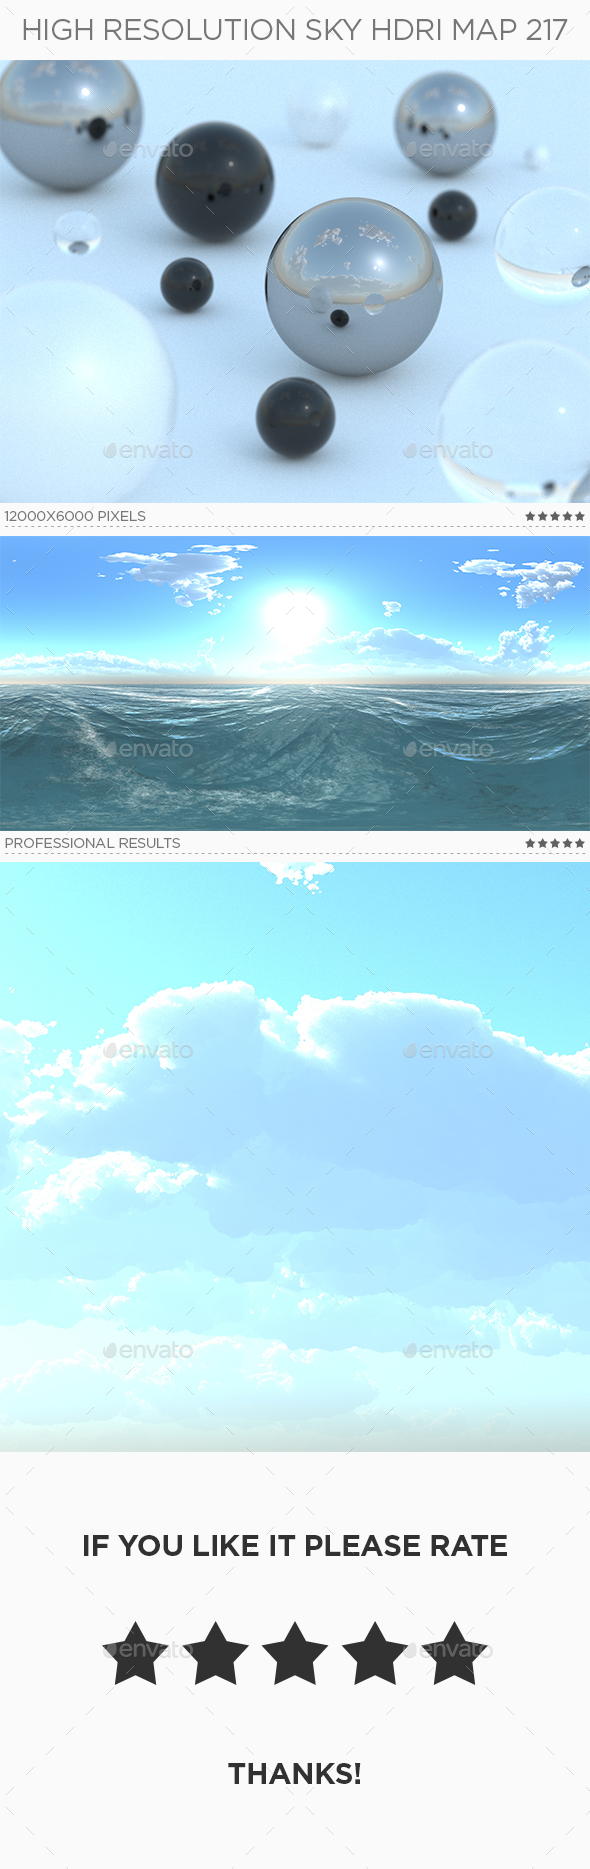 High Resolution Sky HDRi Map 217 - 3DOcean Item for Sale